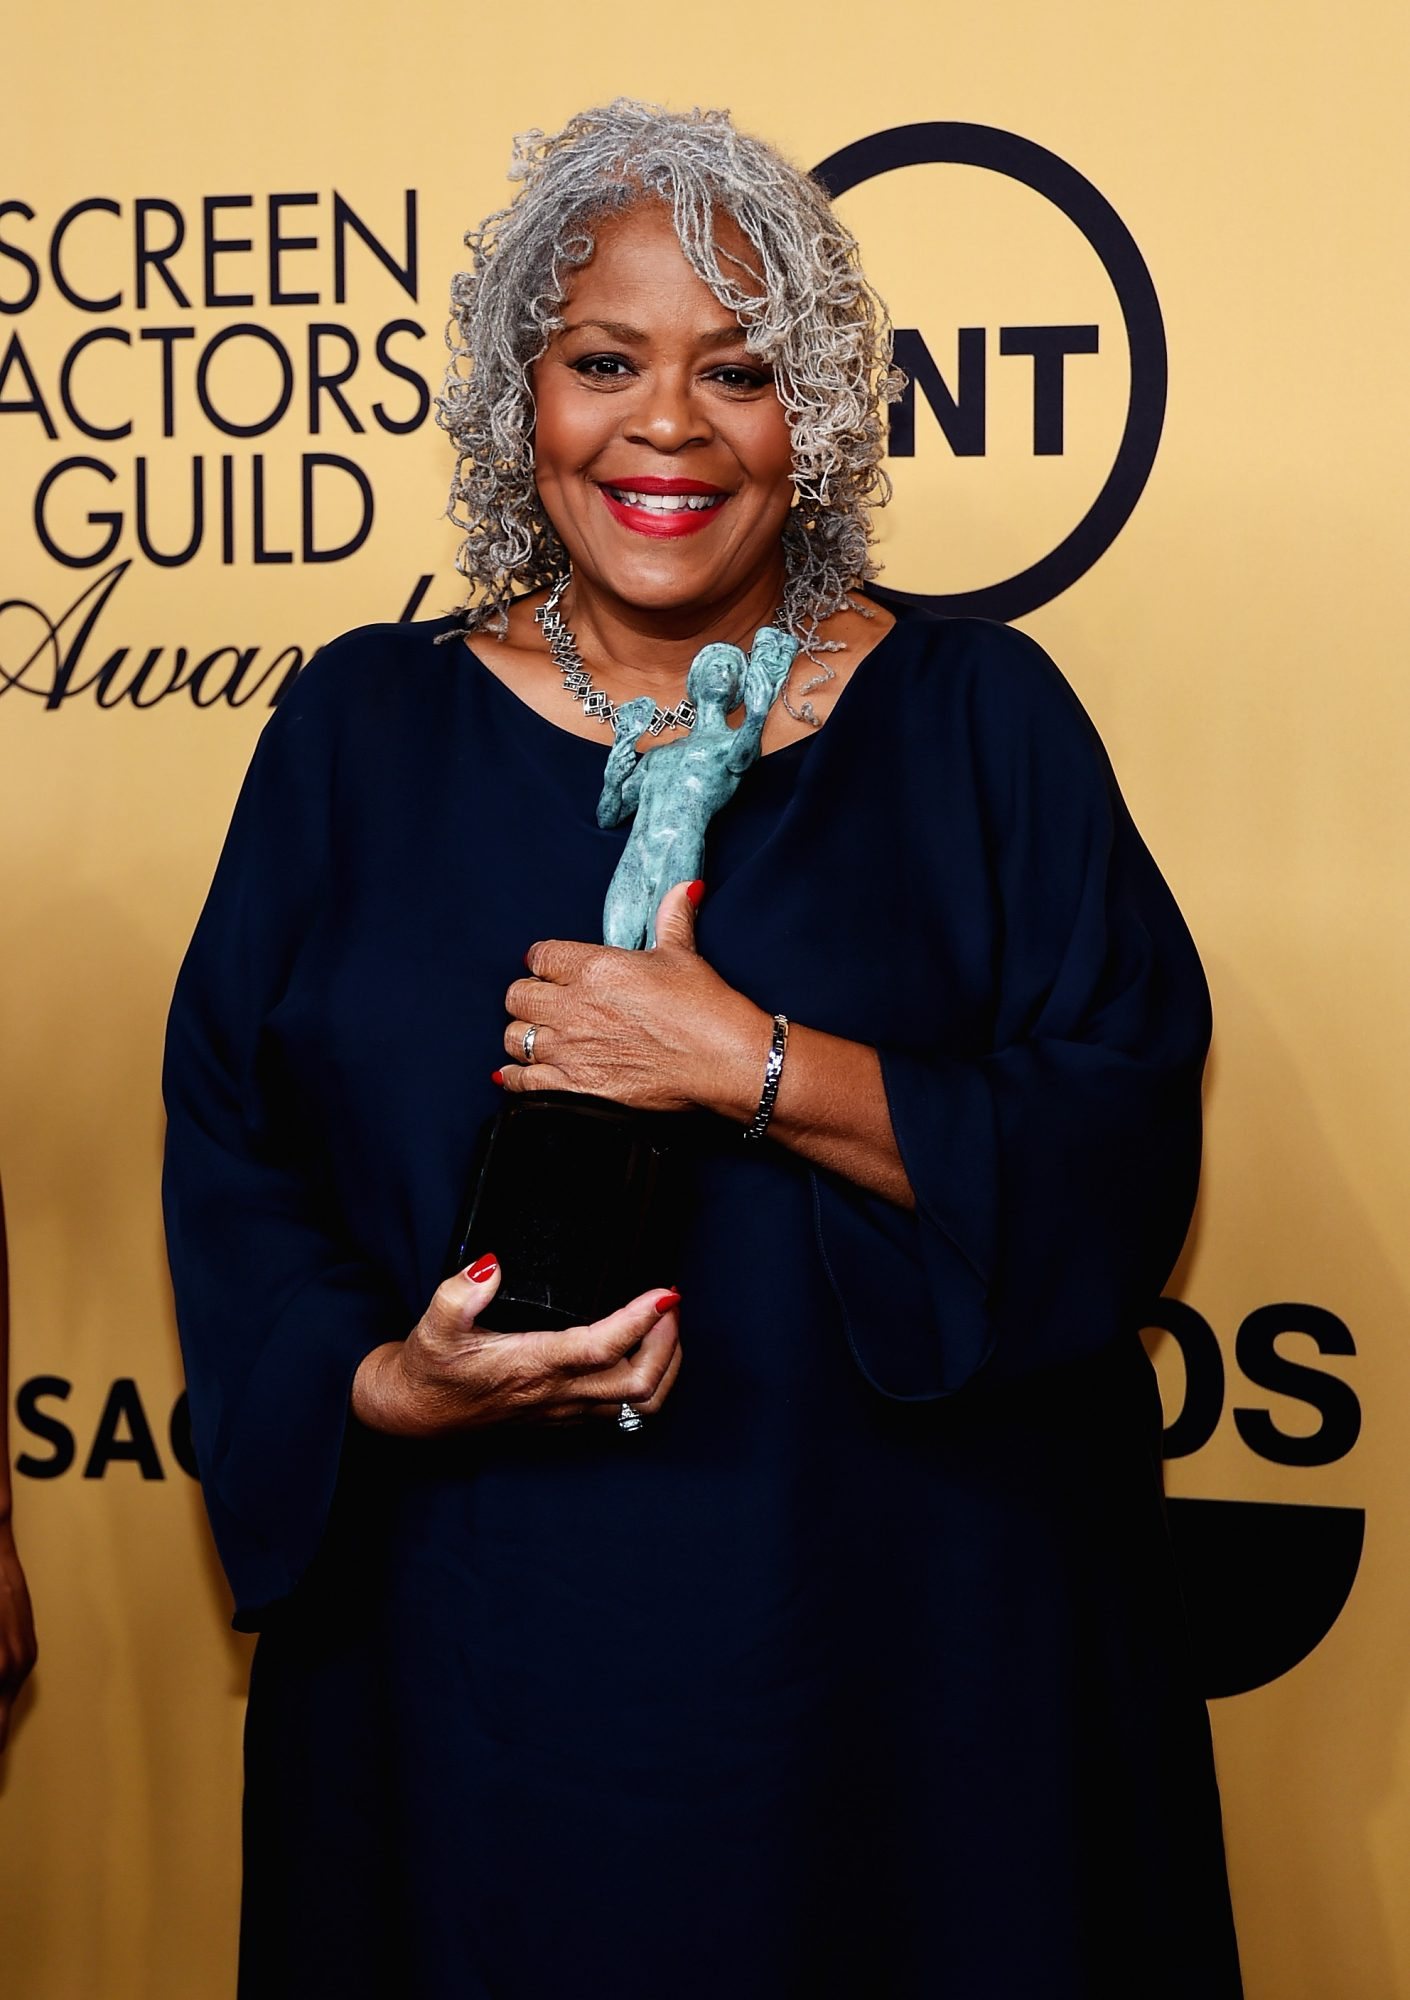 LOS ANGELES, CA - JANUARY 25:  Actress Yvette Freeman, winner of Outstanding Performance by an Ensemble in a Comedy Series for 'Orange Is the New Black,' poses in the press room at the 21st Annual Screen Actors Guild Awards at The Shrine Auditorium on January 25, 2015 in Los Angeles, California.  (Photo by Ethan Miller/Getty Images)